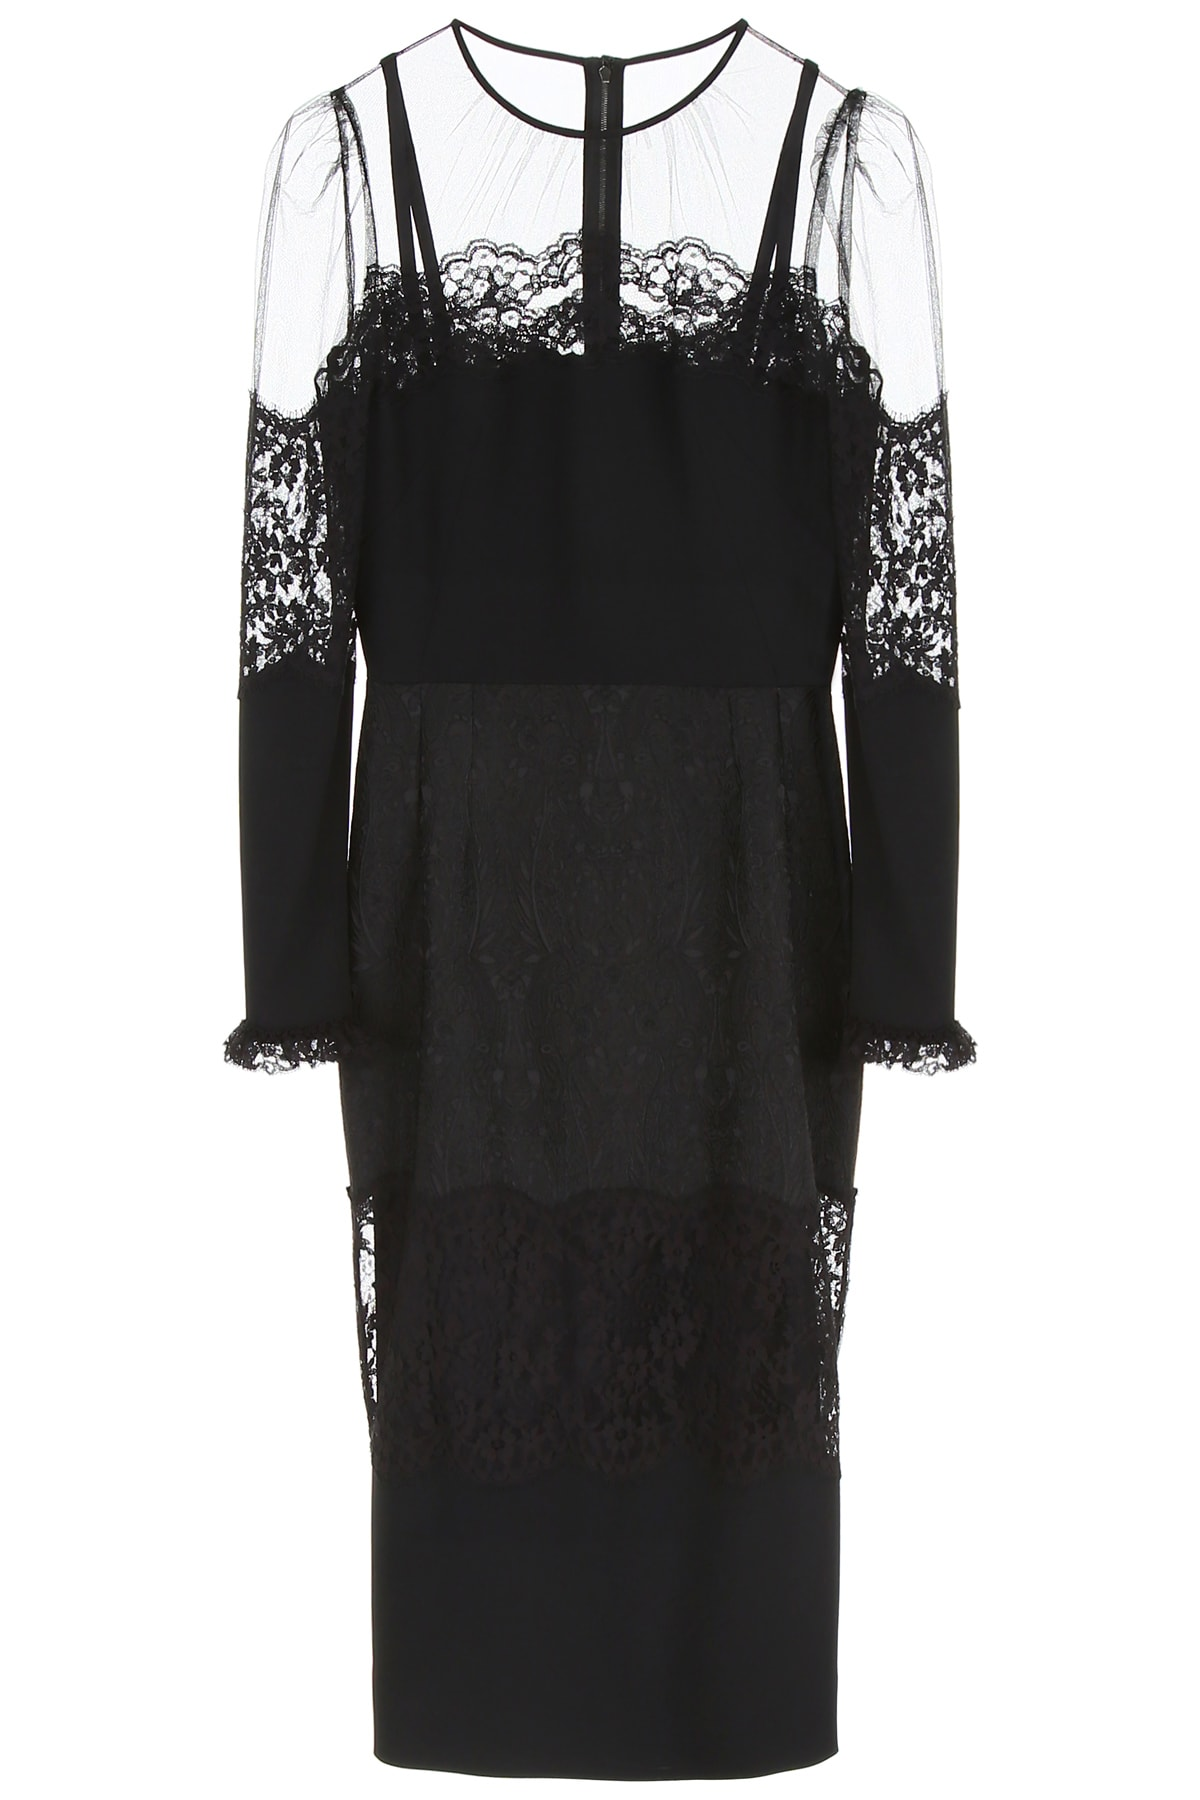 Buy Dolce & Gabbana Dress With Lace online, shop Dolce & Gabbana with free shipping